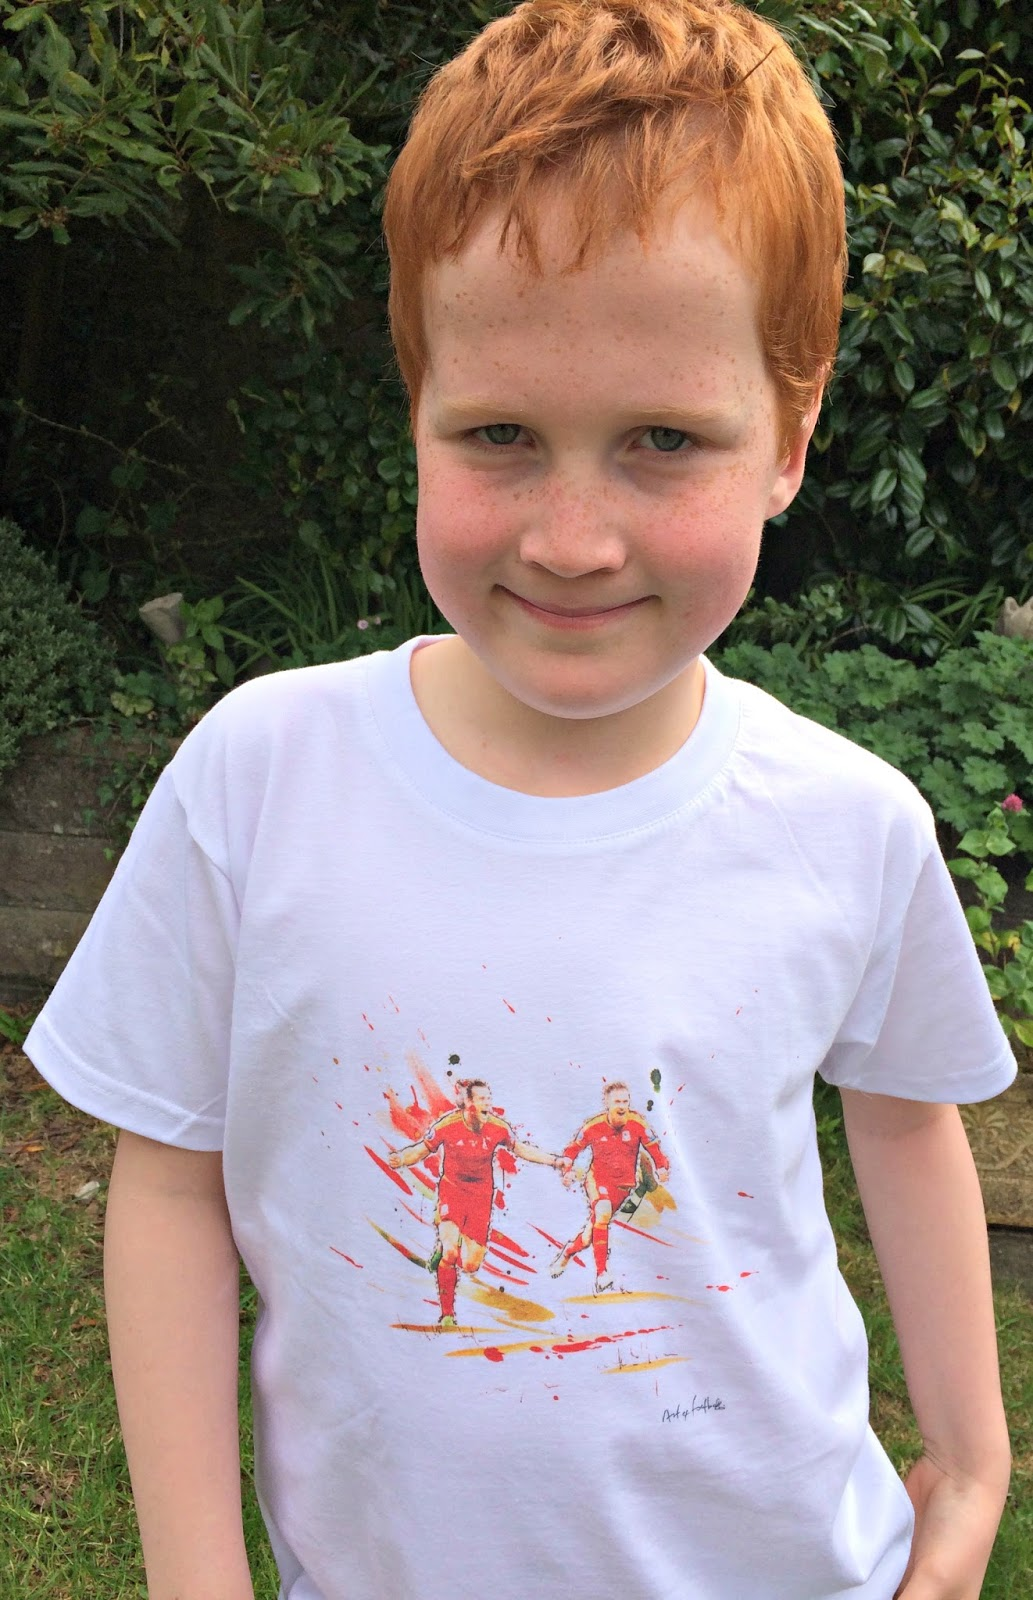 Ieuan Hobbis with Art of Football Enter The Dragon T-shirt